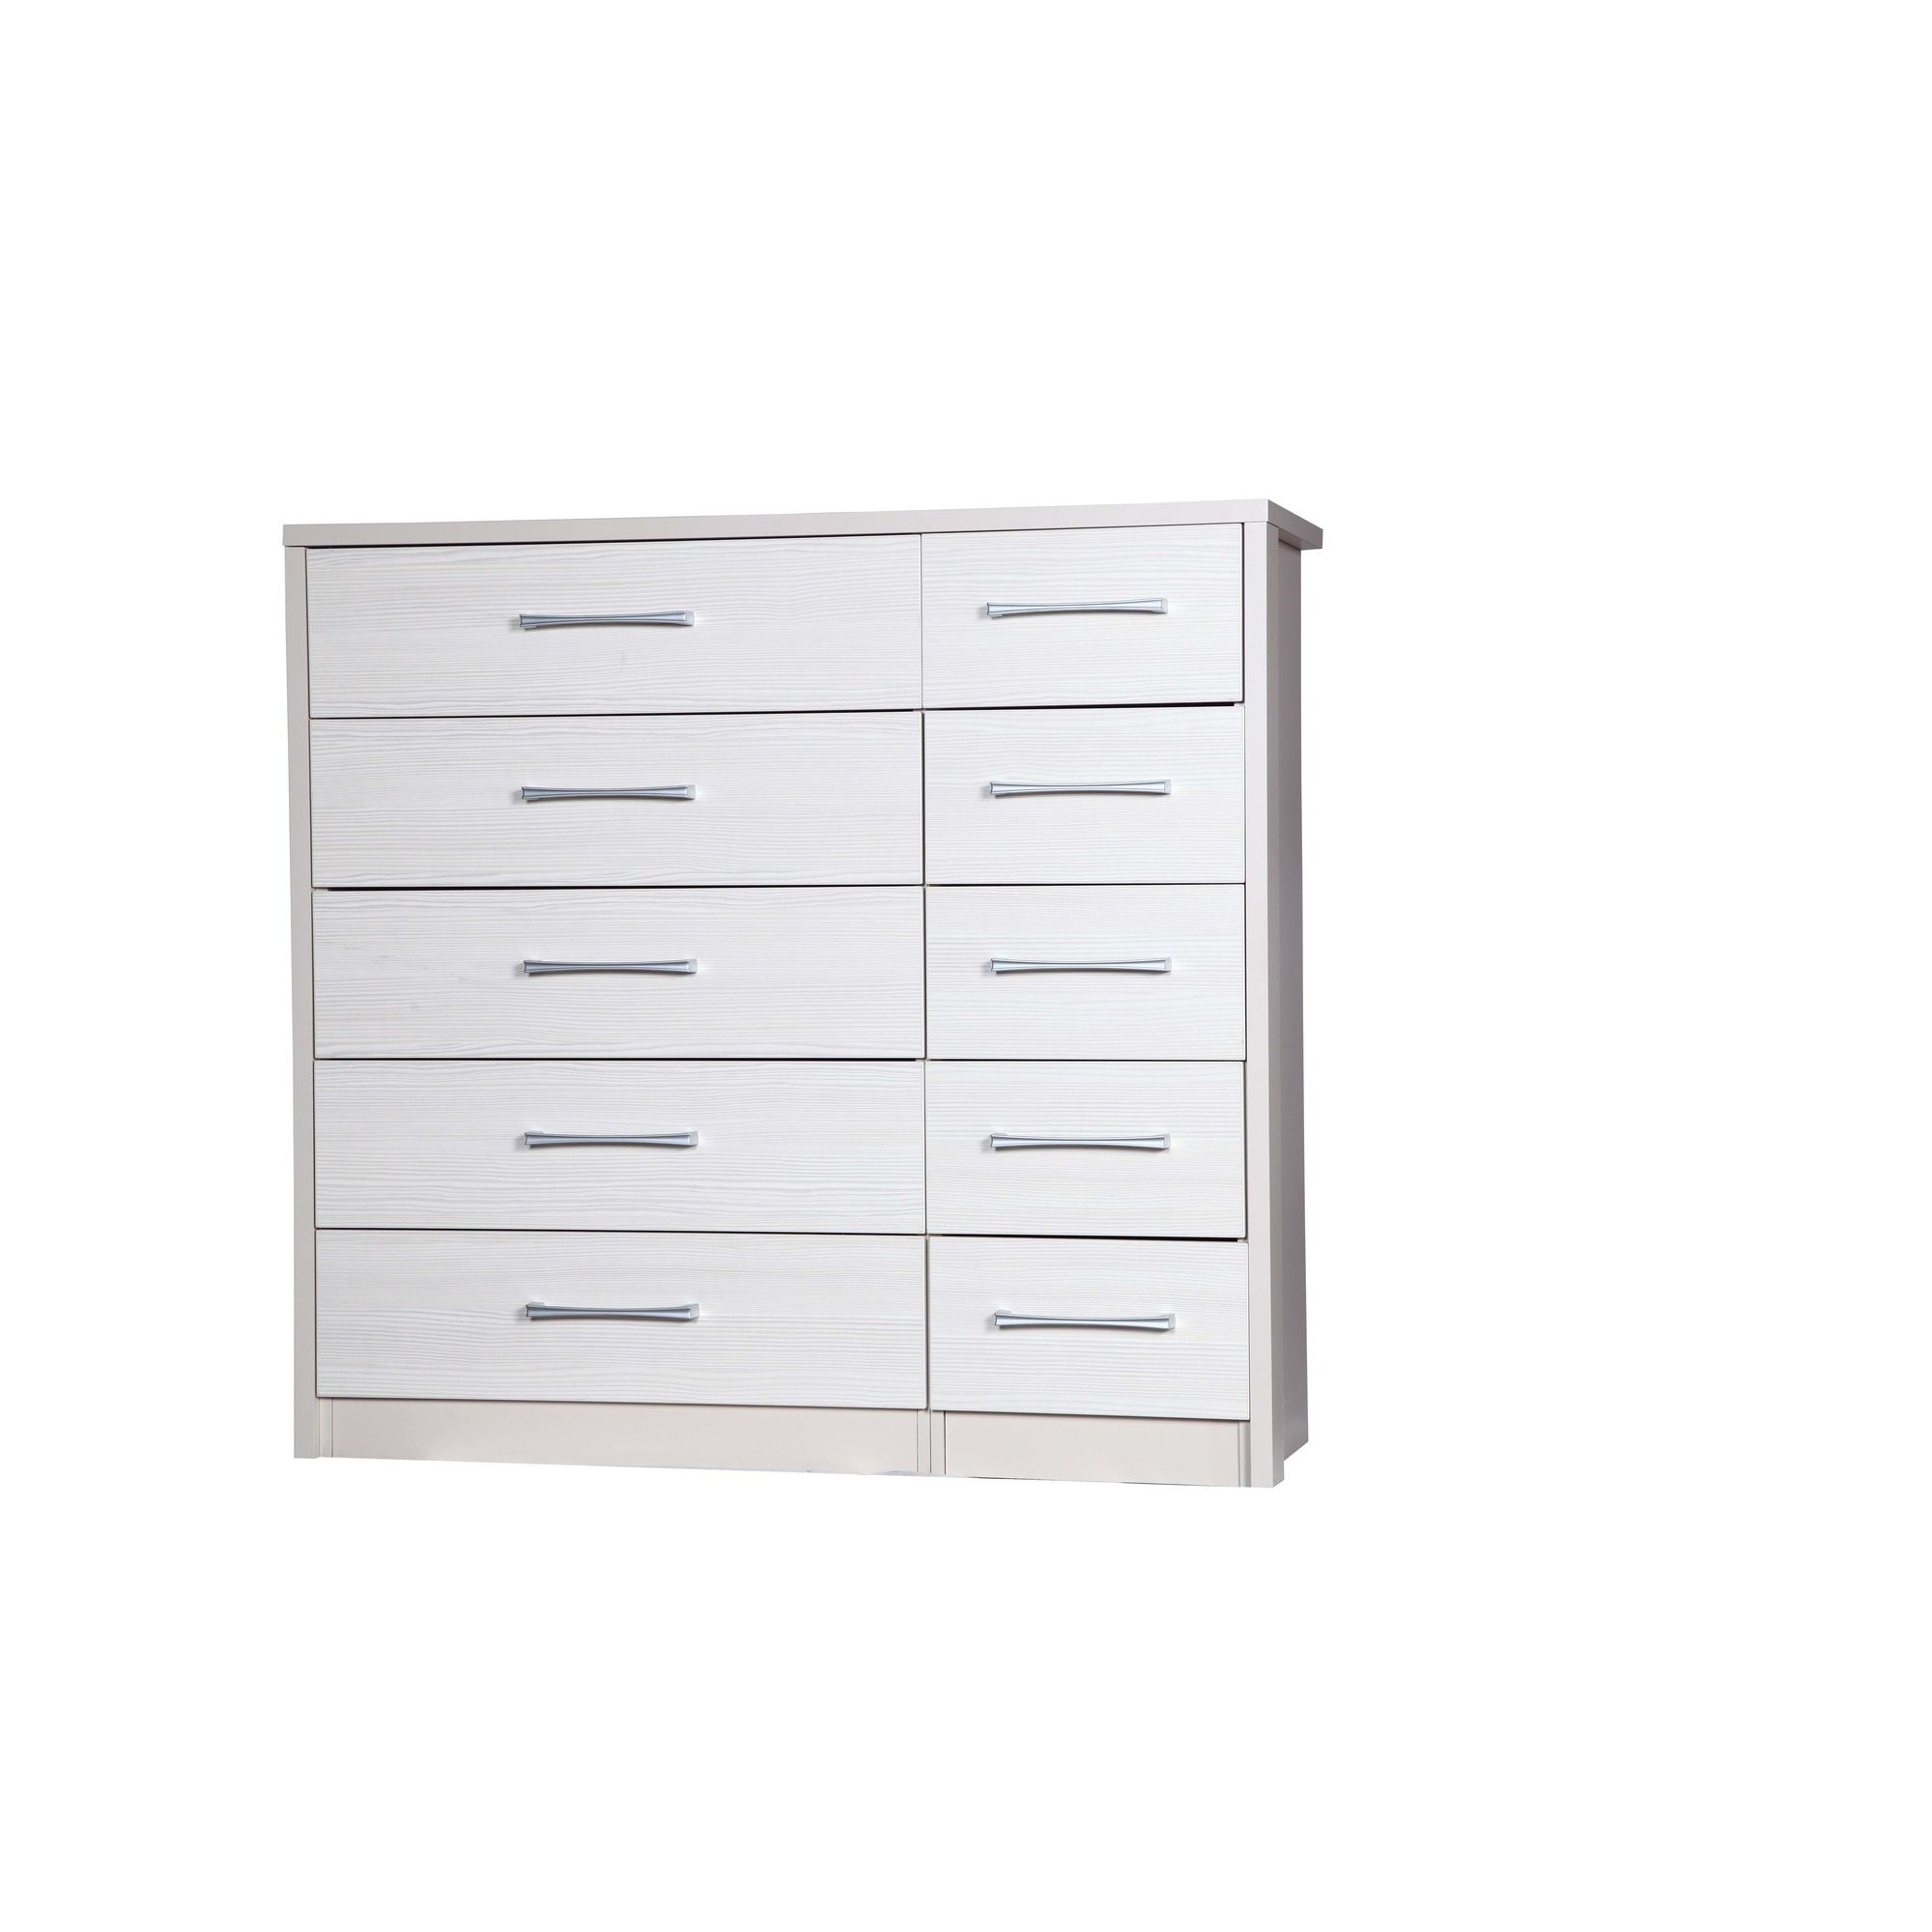 Alto Furniture Avola 10 Drawer Double Chest - Cream Carcass With White Avola at Tesco Direct